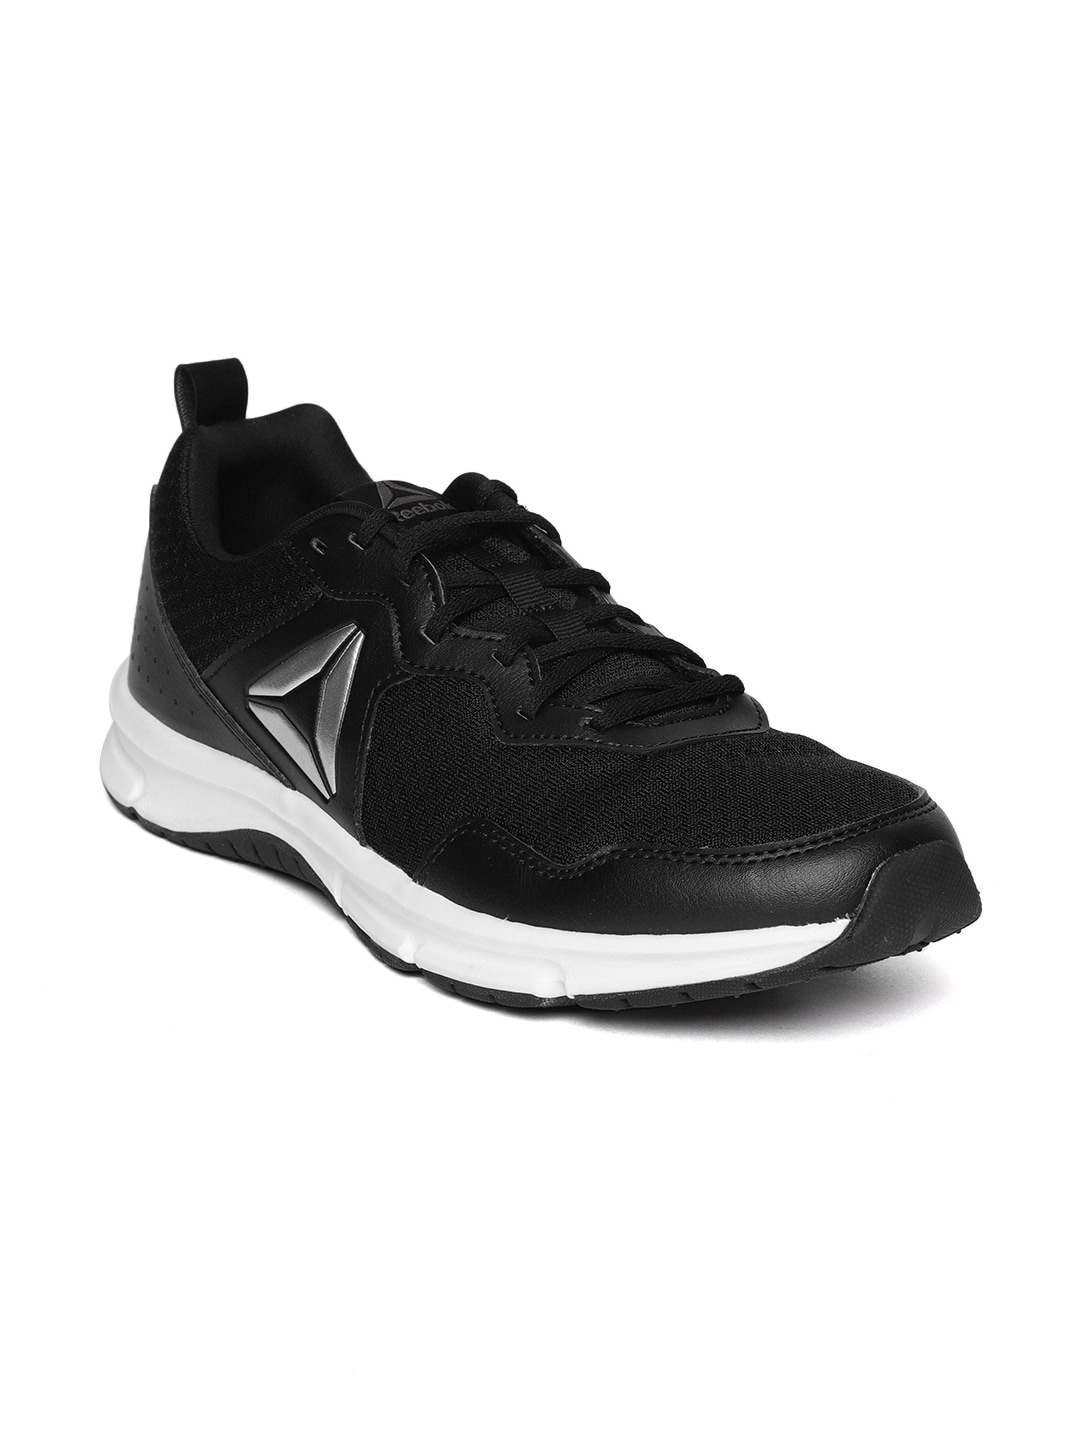 Reebok Men Black Express Runner 2.0 Running Shoes 1b40df06b